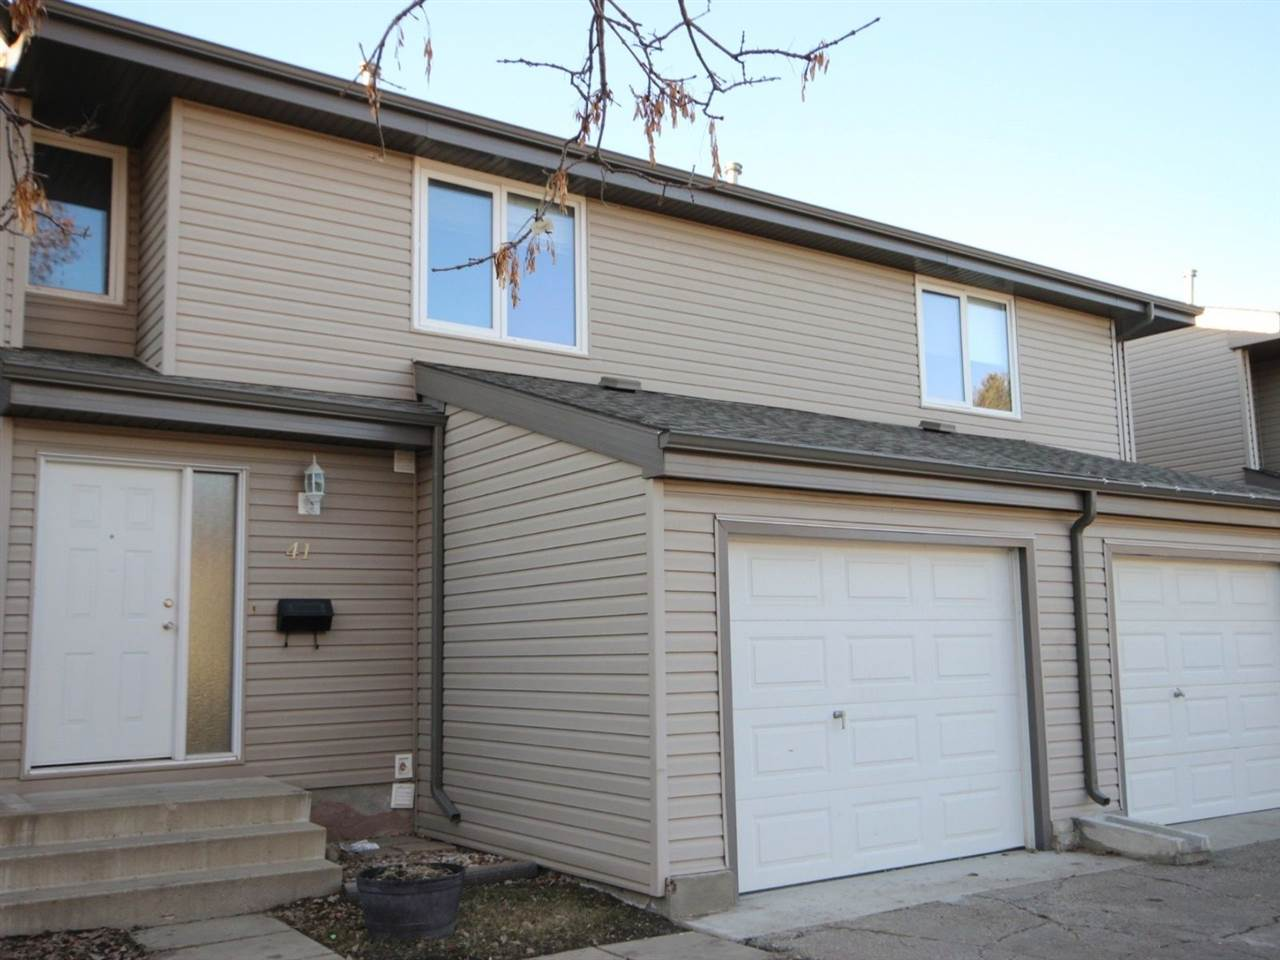 Main Photo: 41 Akinsdale Gardens: St. Albert Townhouse for sale : MLS® # E4058264